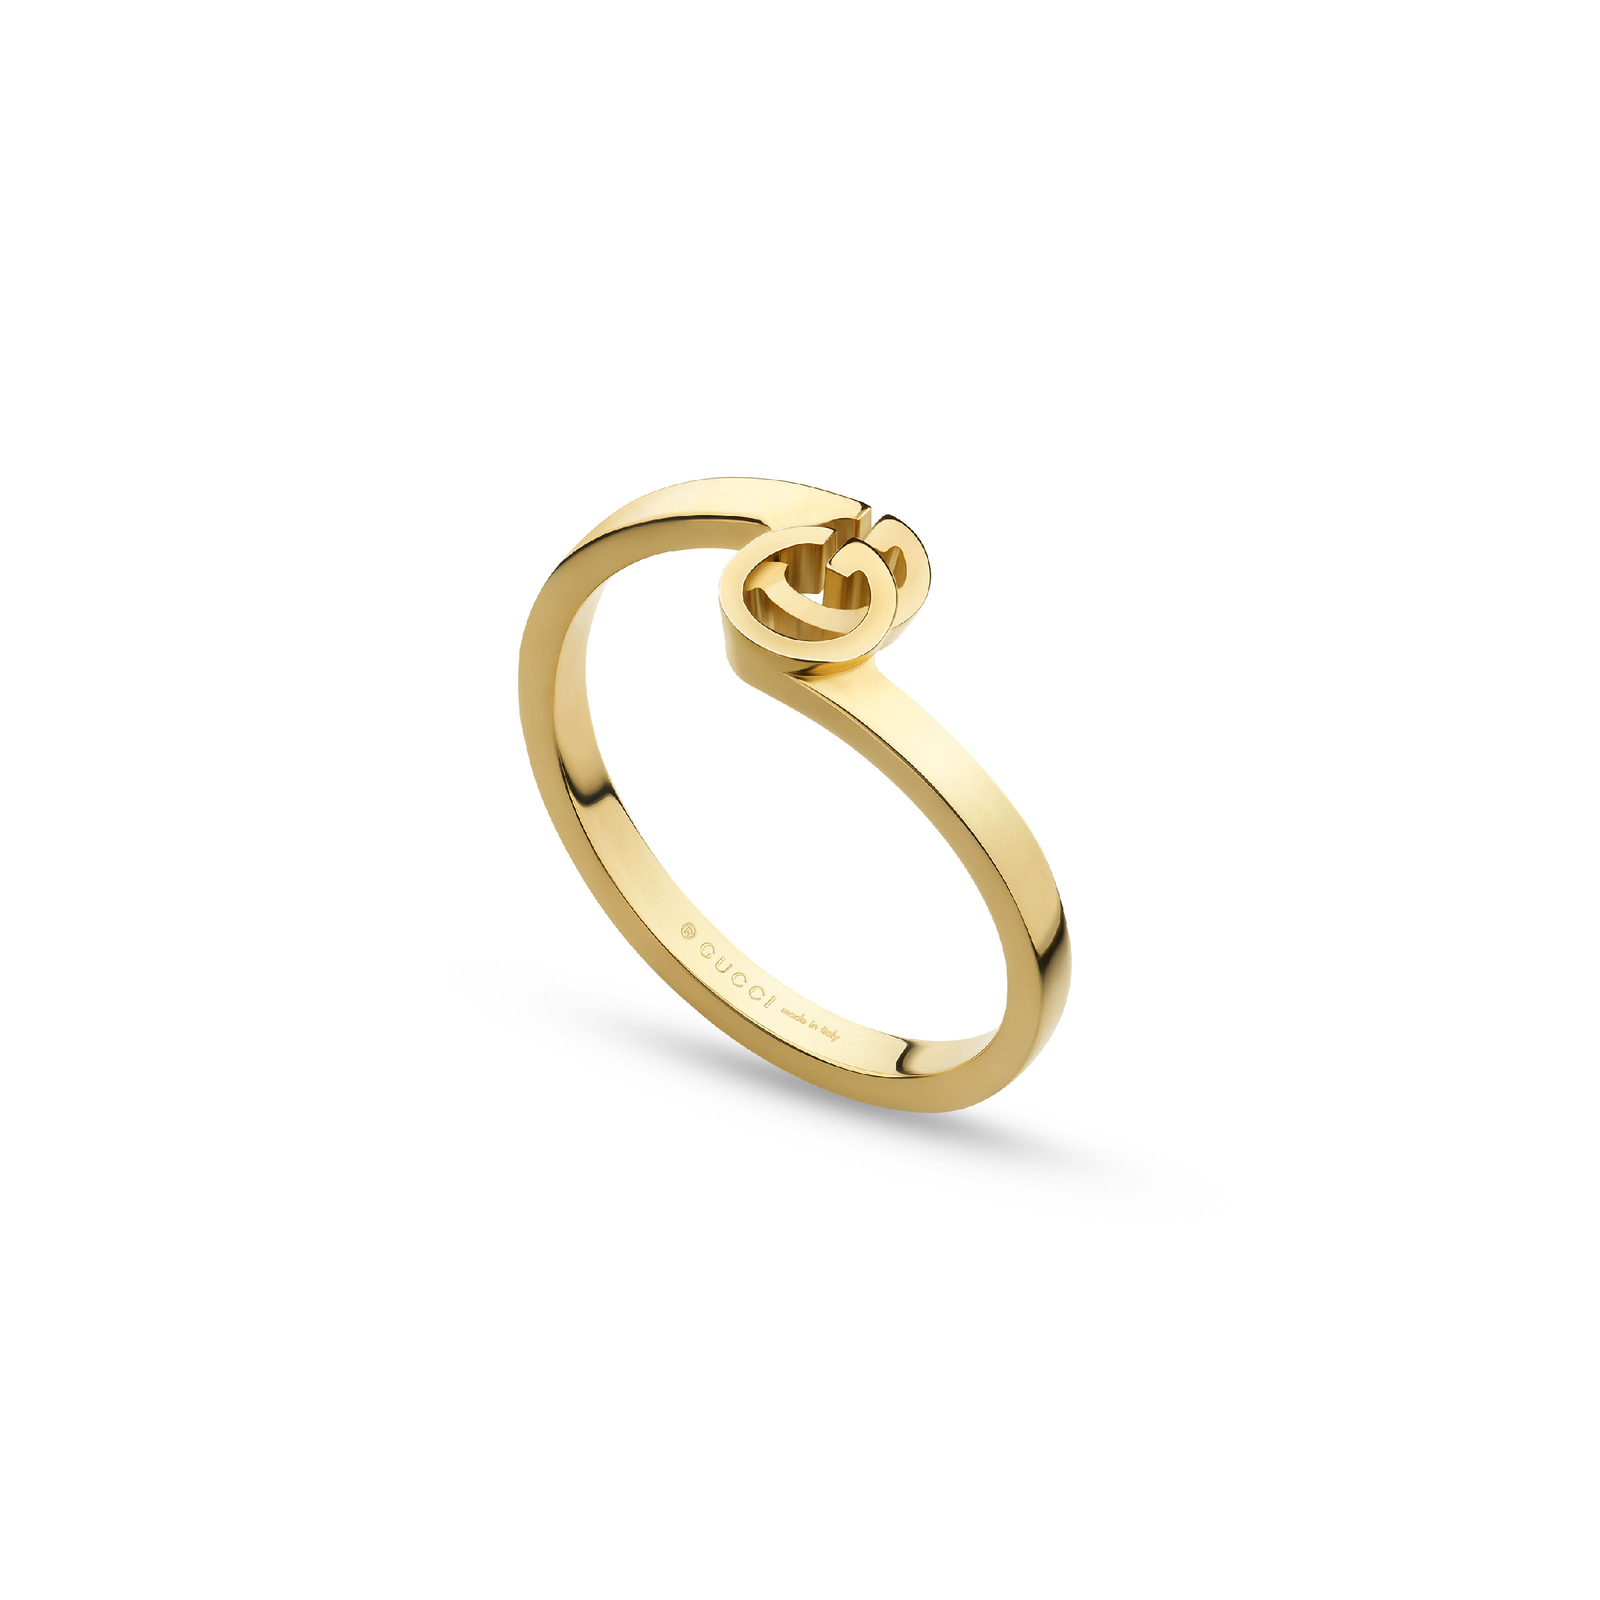 Gucci Running G Ring in 18ct Yellow Gold - Ring Size N